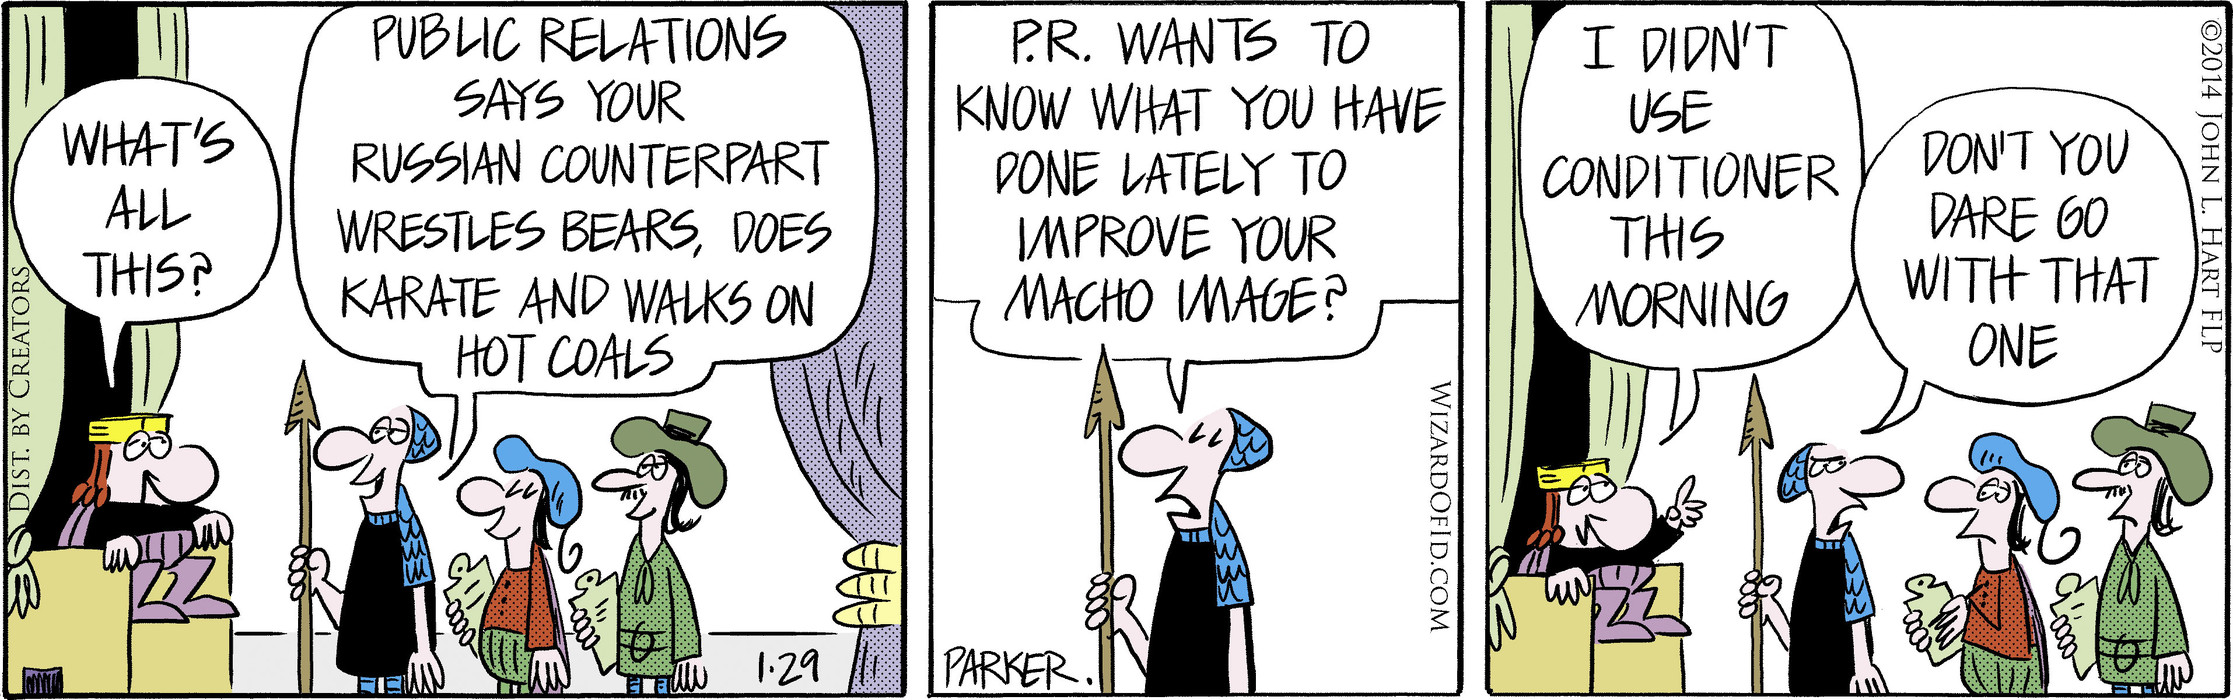 Wizard of Id for Jan 29, 2014